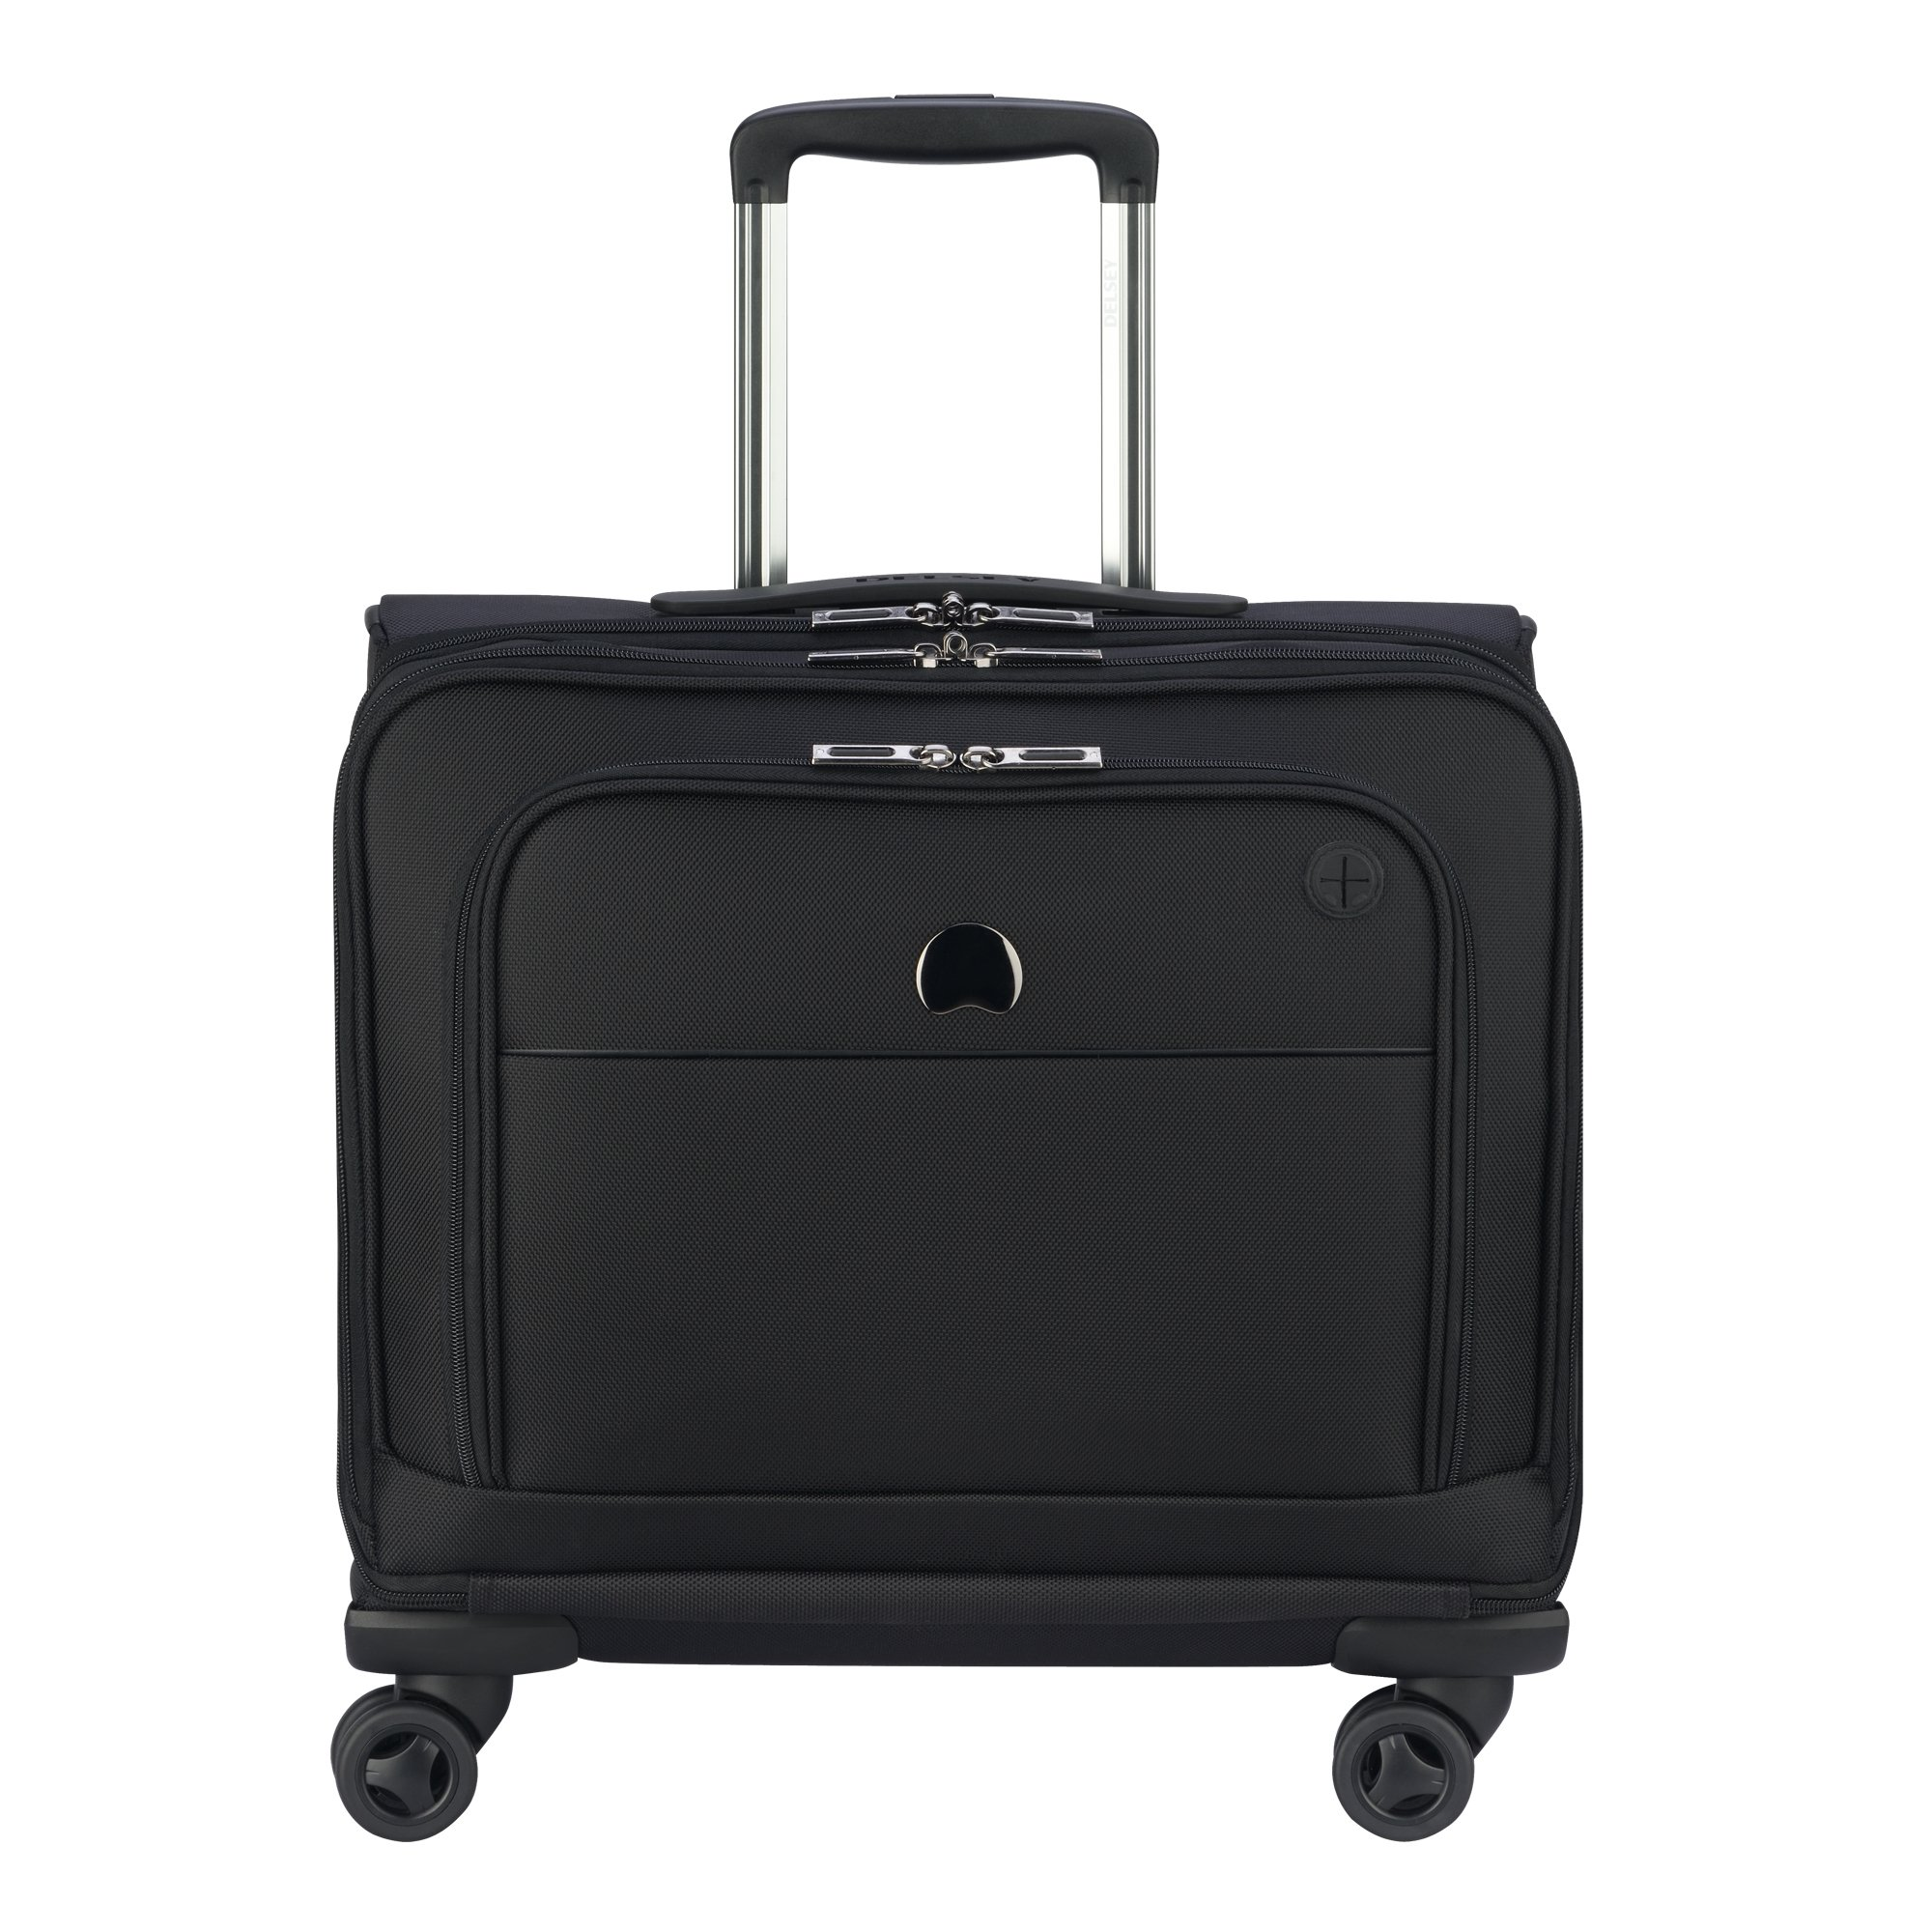 Delsey Luggage 4 Wheel Spinner Mobile Office-Exclusive Briefcase, Black, One Size